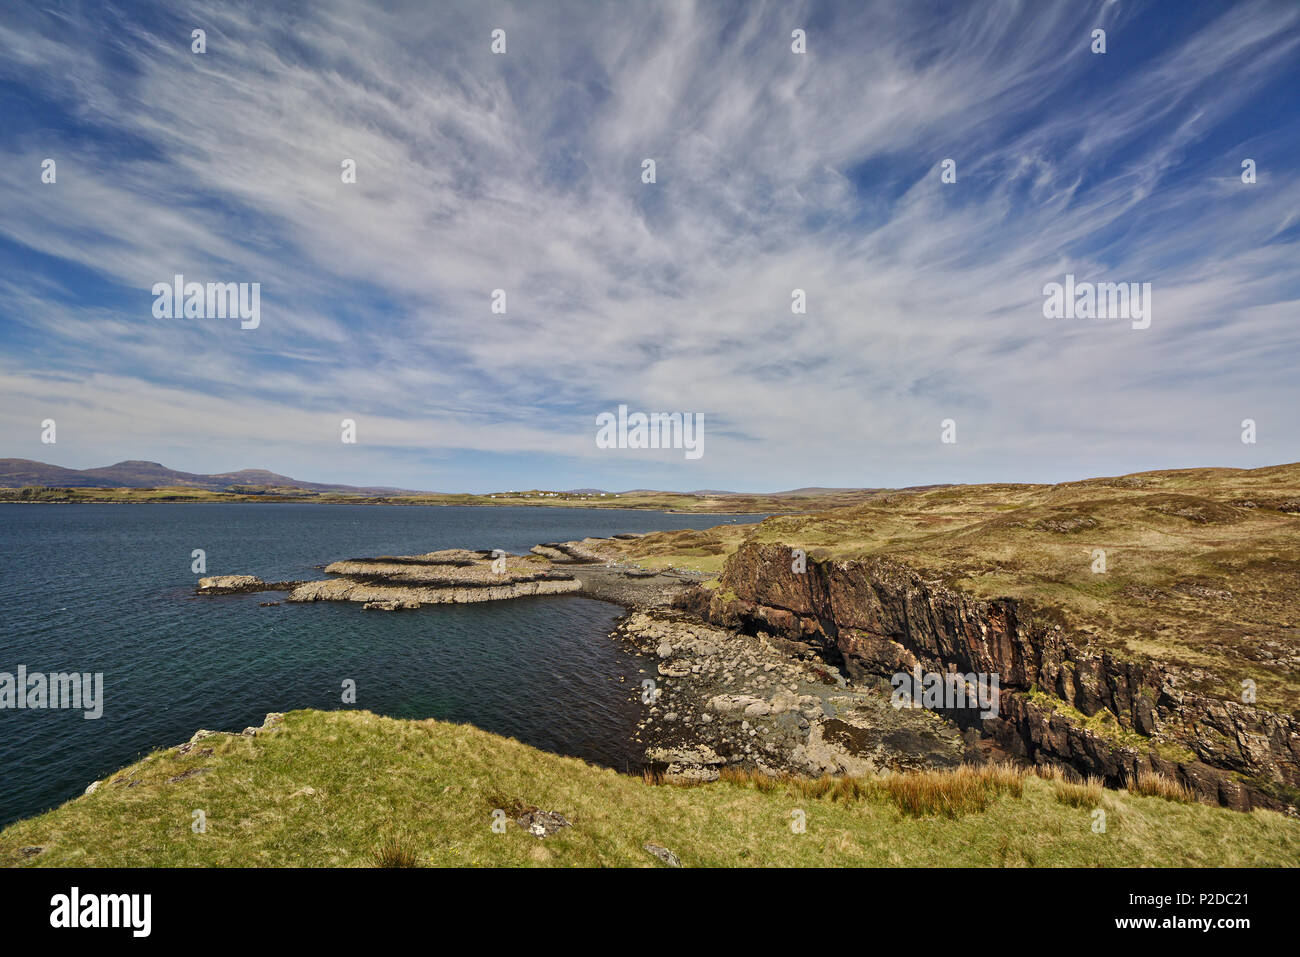 Sea cliff with low headland in the background and blue sky with white cirrus clouds Stock Photo